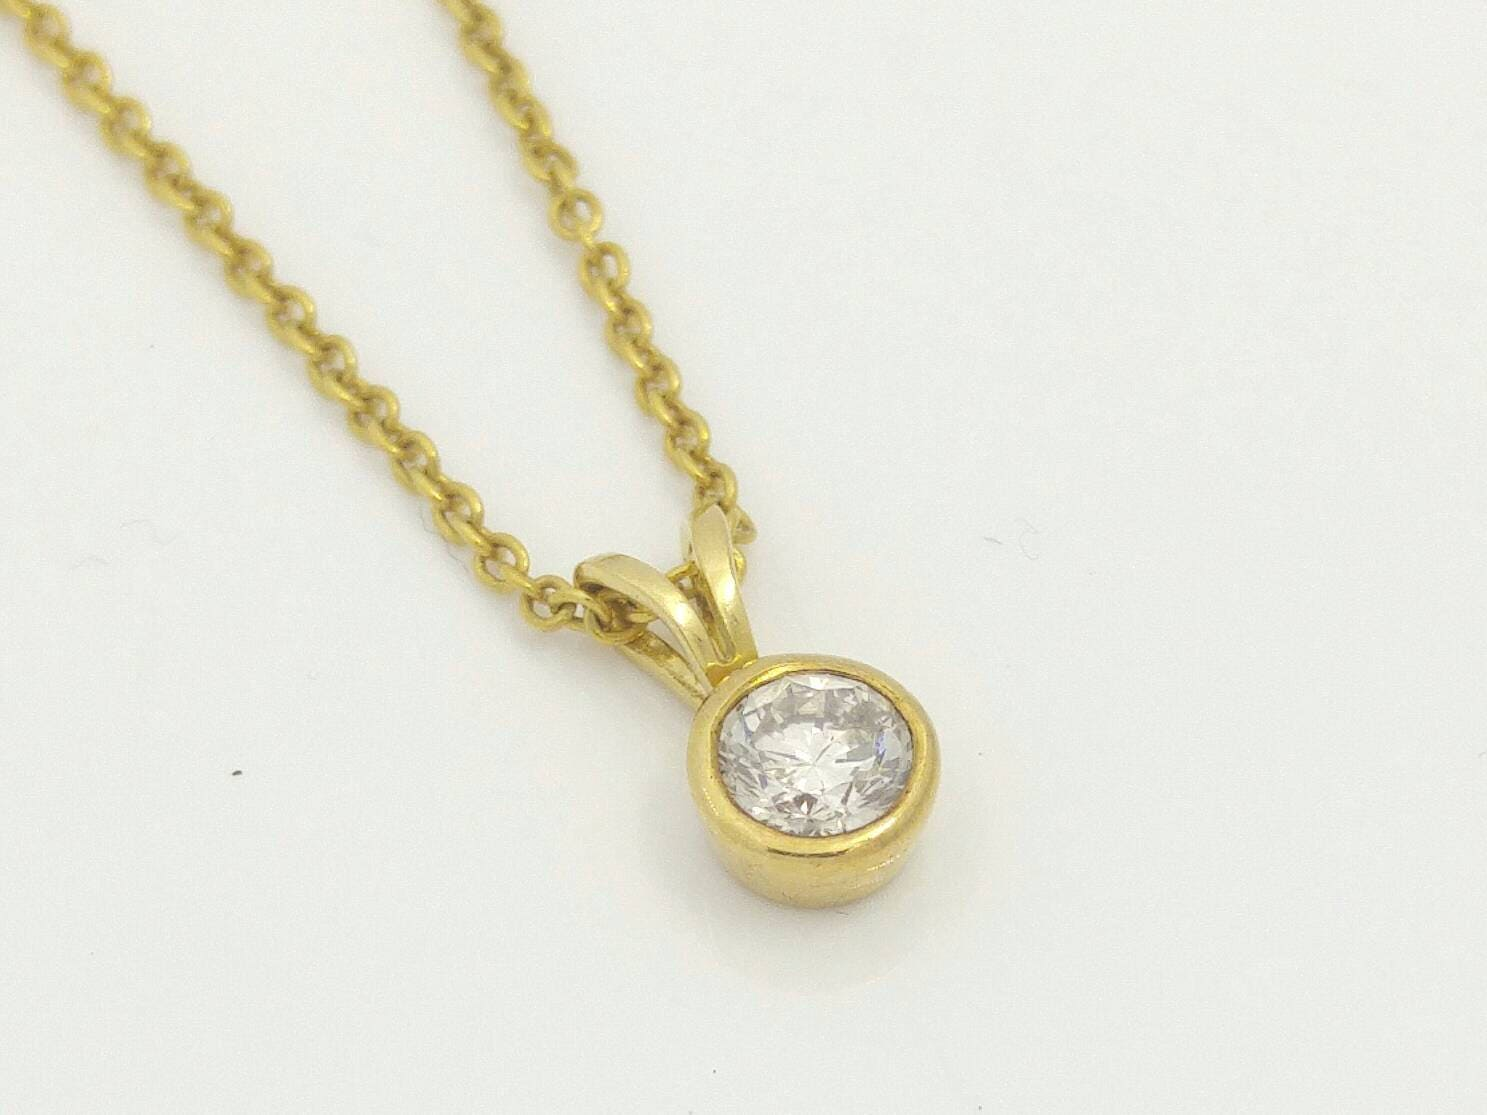 Single diamond necklace 14k gold necklace diamond pendant zoom aloadofball Image collections